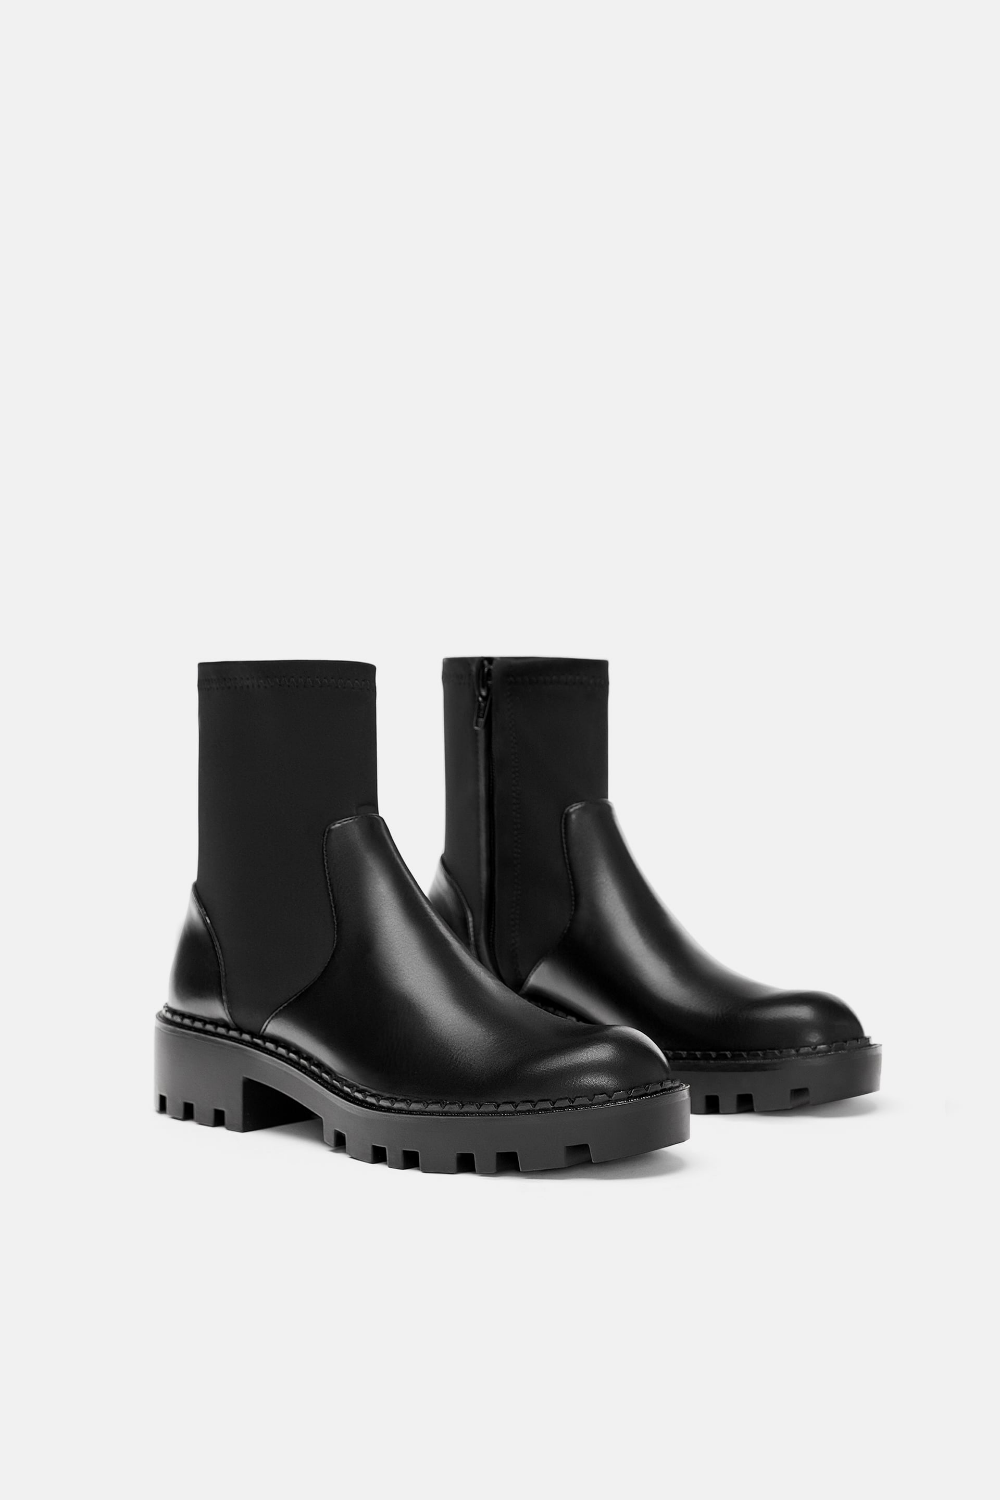 ELASTICATED FLAT ANKLE BOOTS - View all